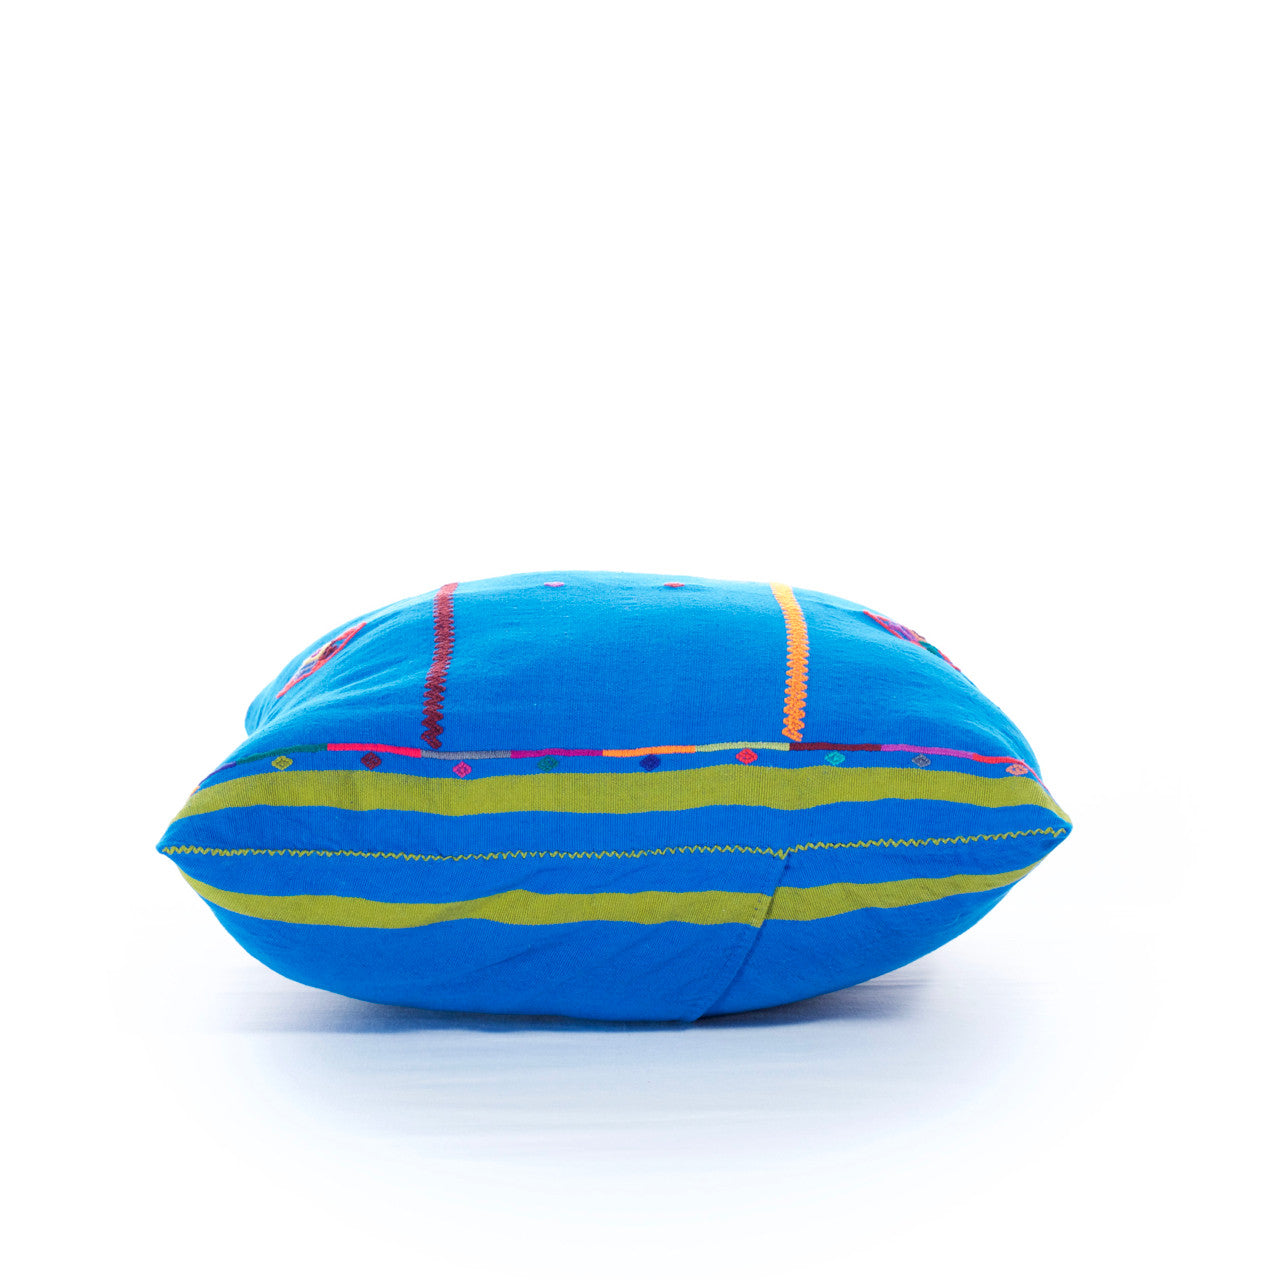 Sapo Cushion - Cielo Collective - Light Blue - 5